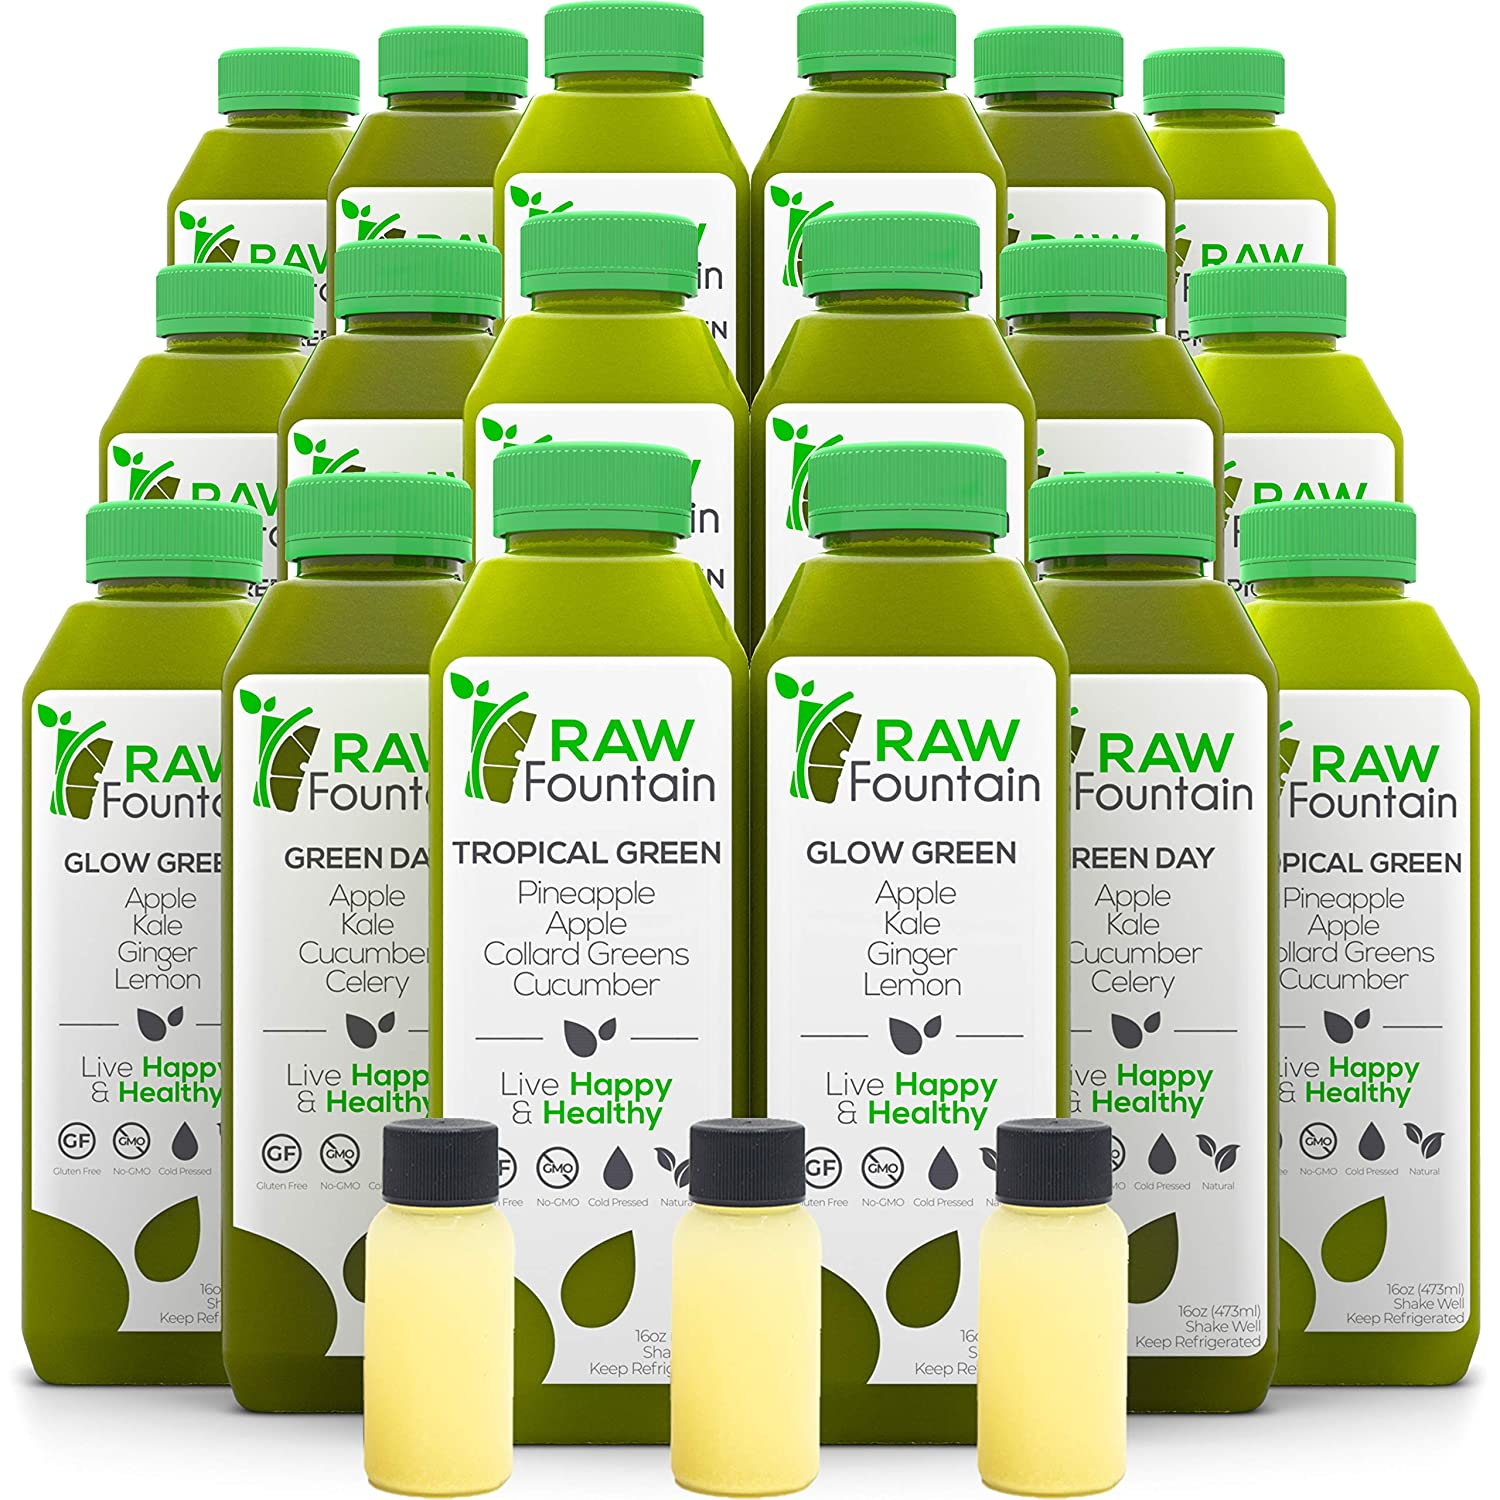 RAW Fountain 7 Day Green Juice Cleanse, 100% Raw Natural Vegan Detox, Cold Pressed Juices, 42 Bottles 16oz + 7 Ginger Shots